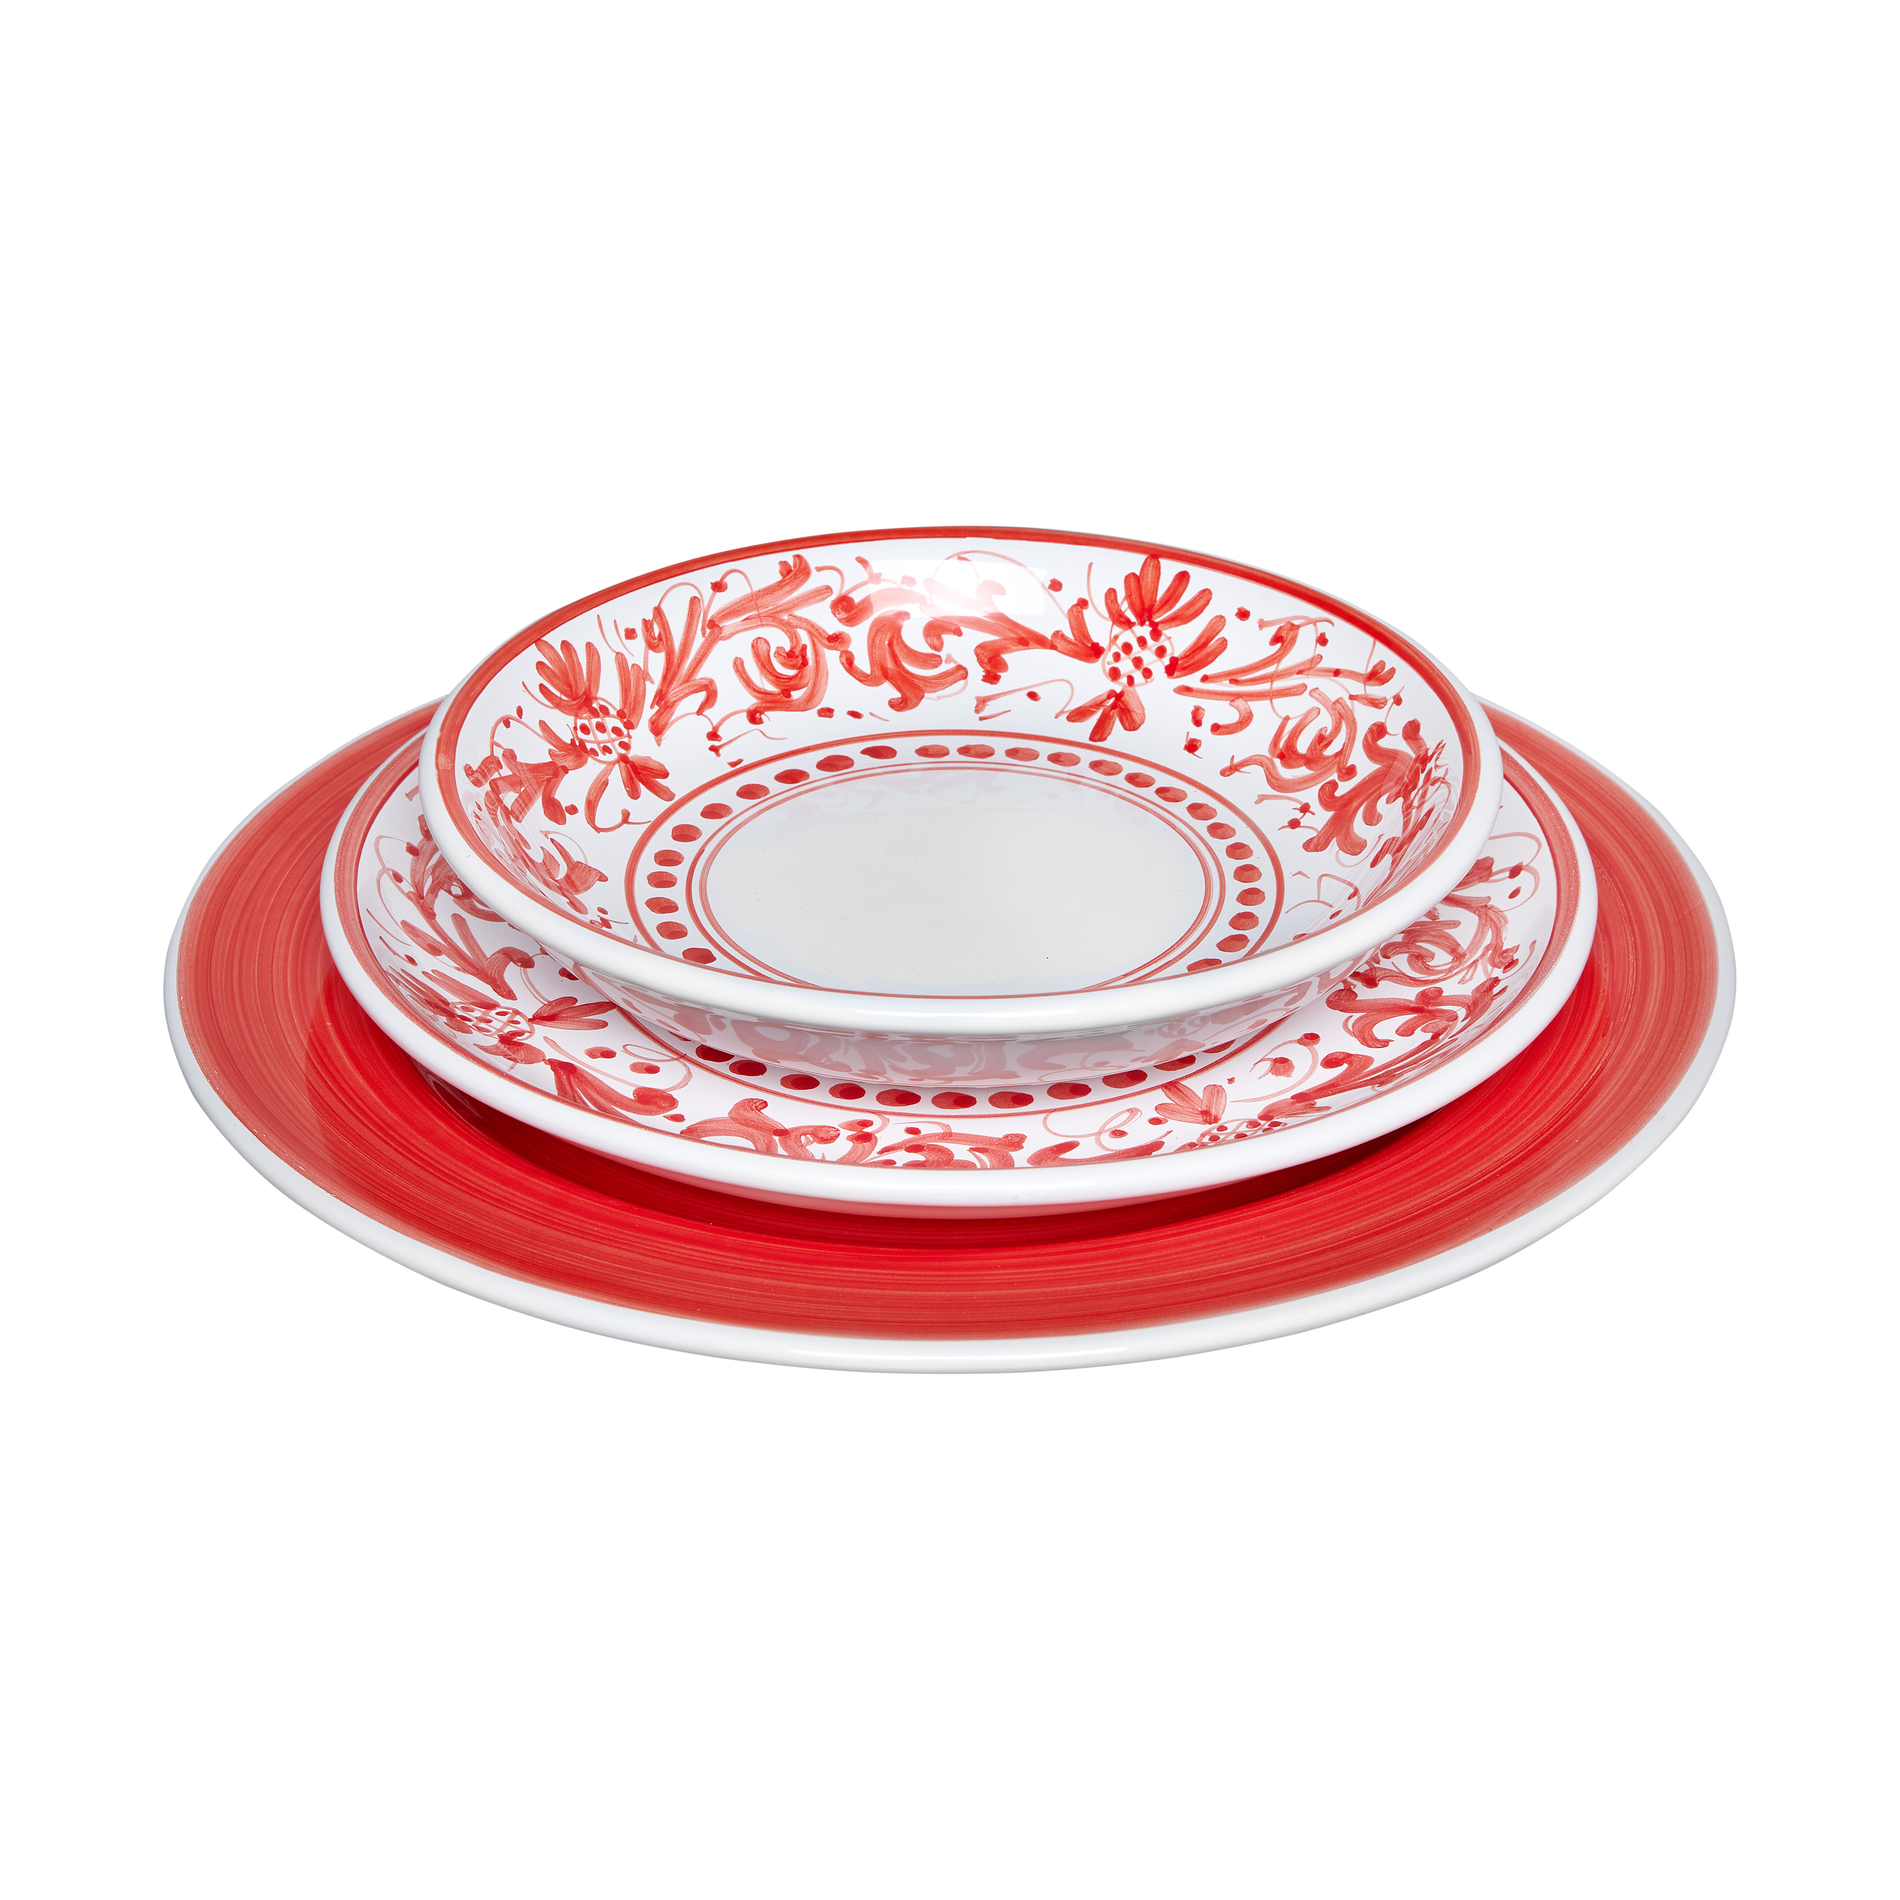 Decorated Sicilian ceramic tableware range  sc 1 st  Coincasa : sicilian dinnerware - Pezcame.Com